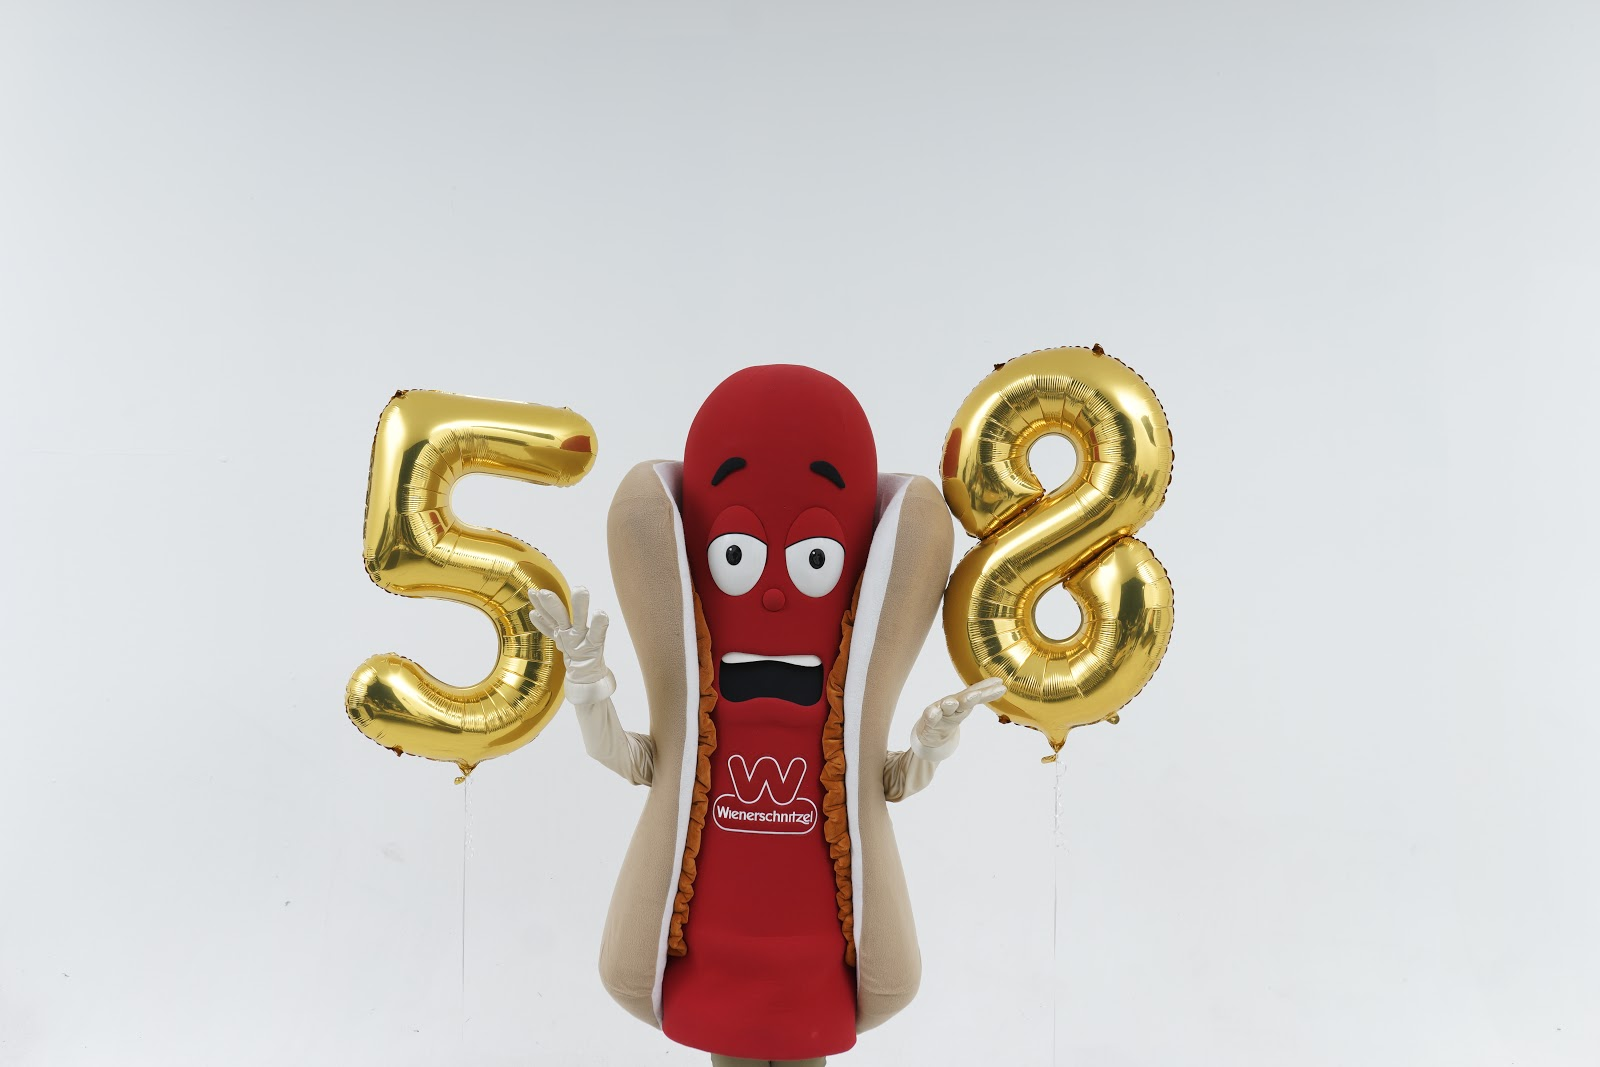 July 9 | Wienerschnitzel Celebrates 58 Years with 58-Cent Hot Dogs!